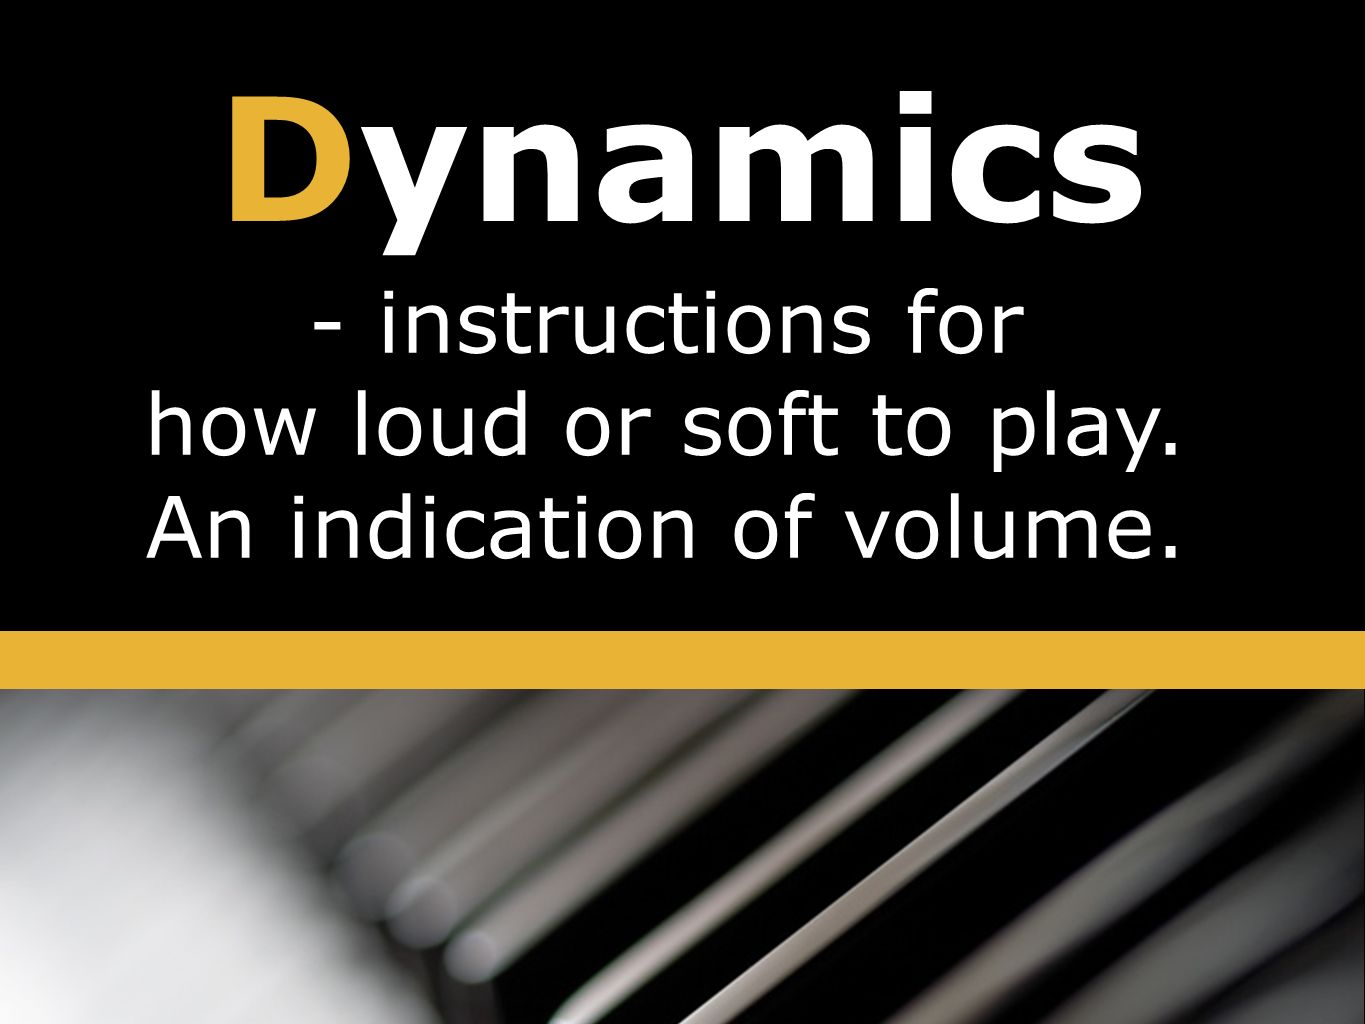 Dynamics - instructions for how loud or soft to play. An indication of volume.